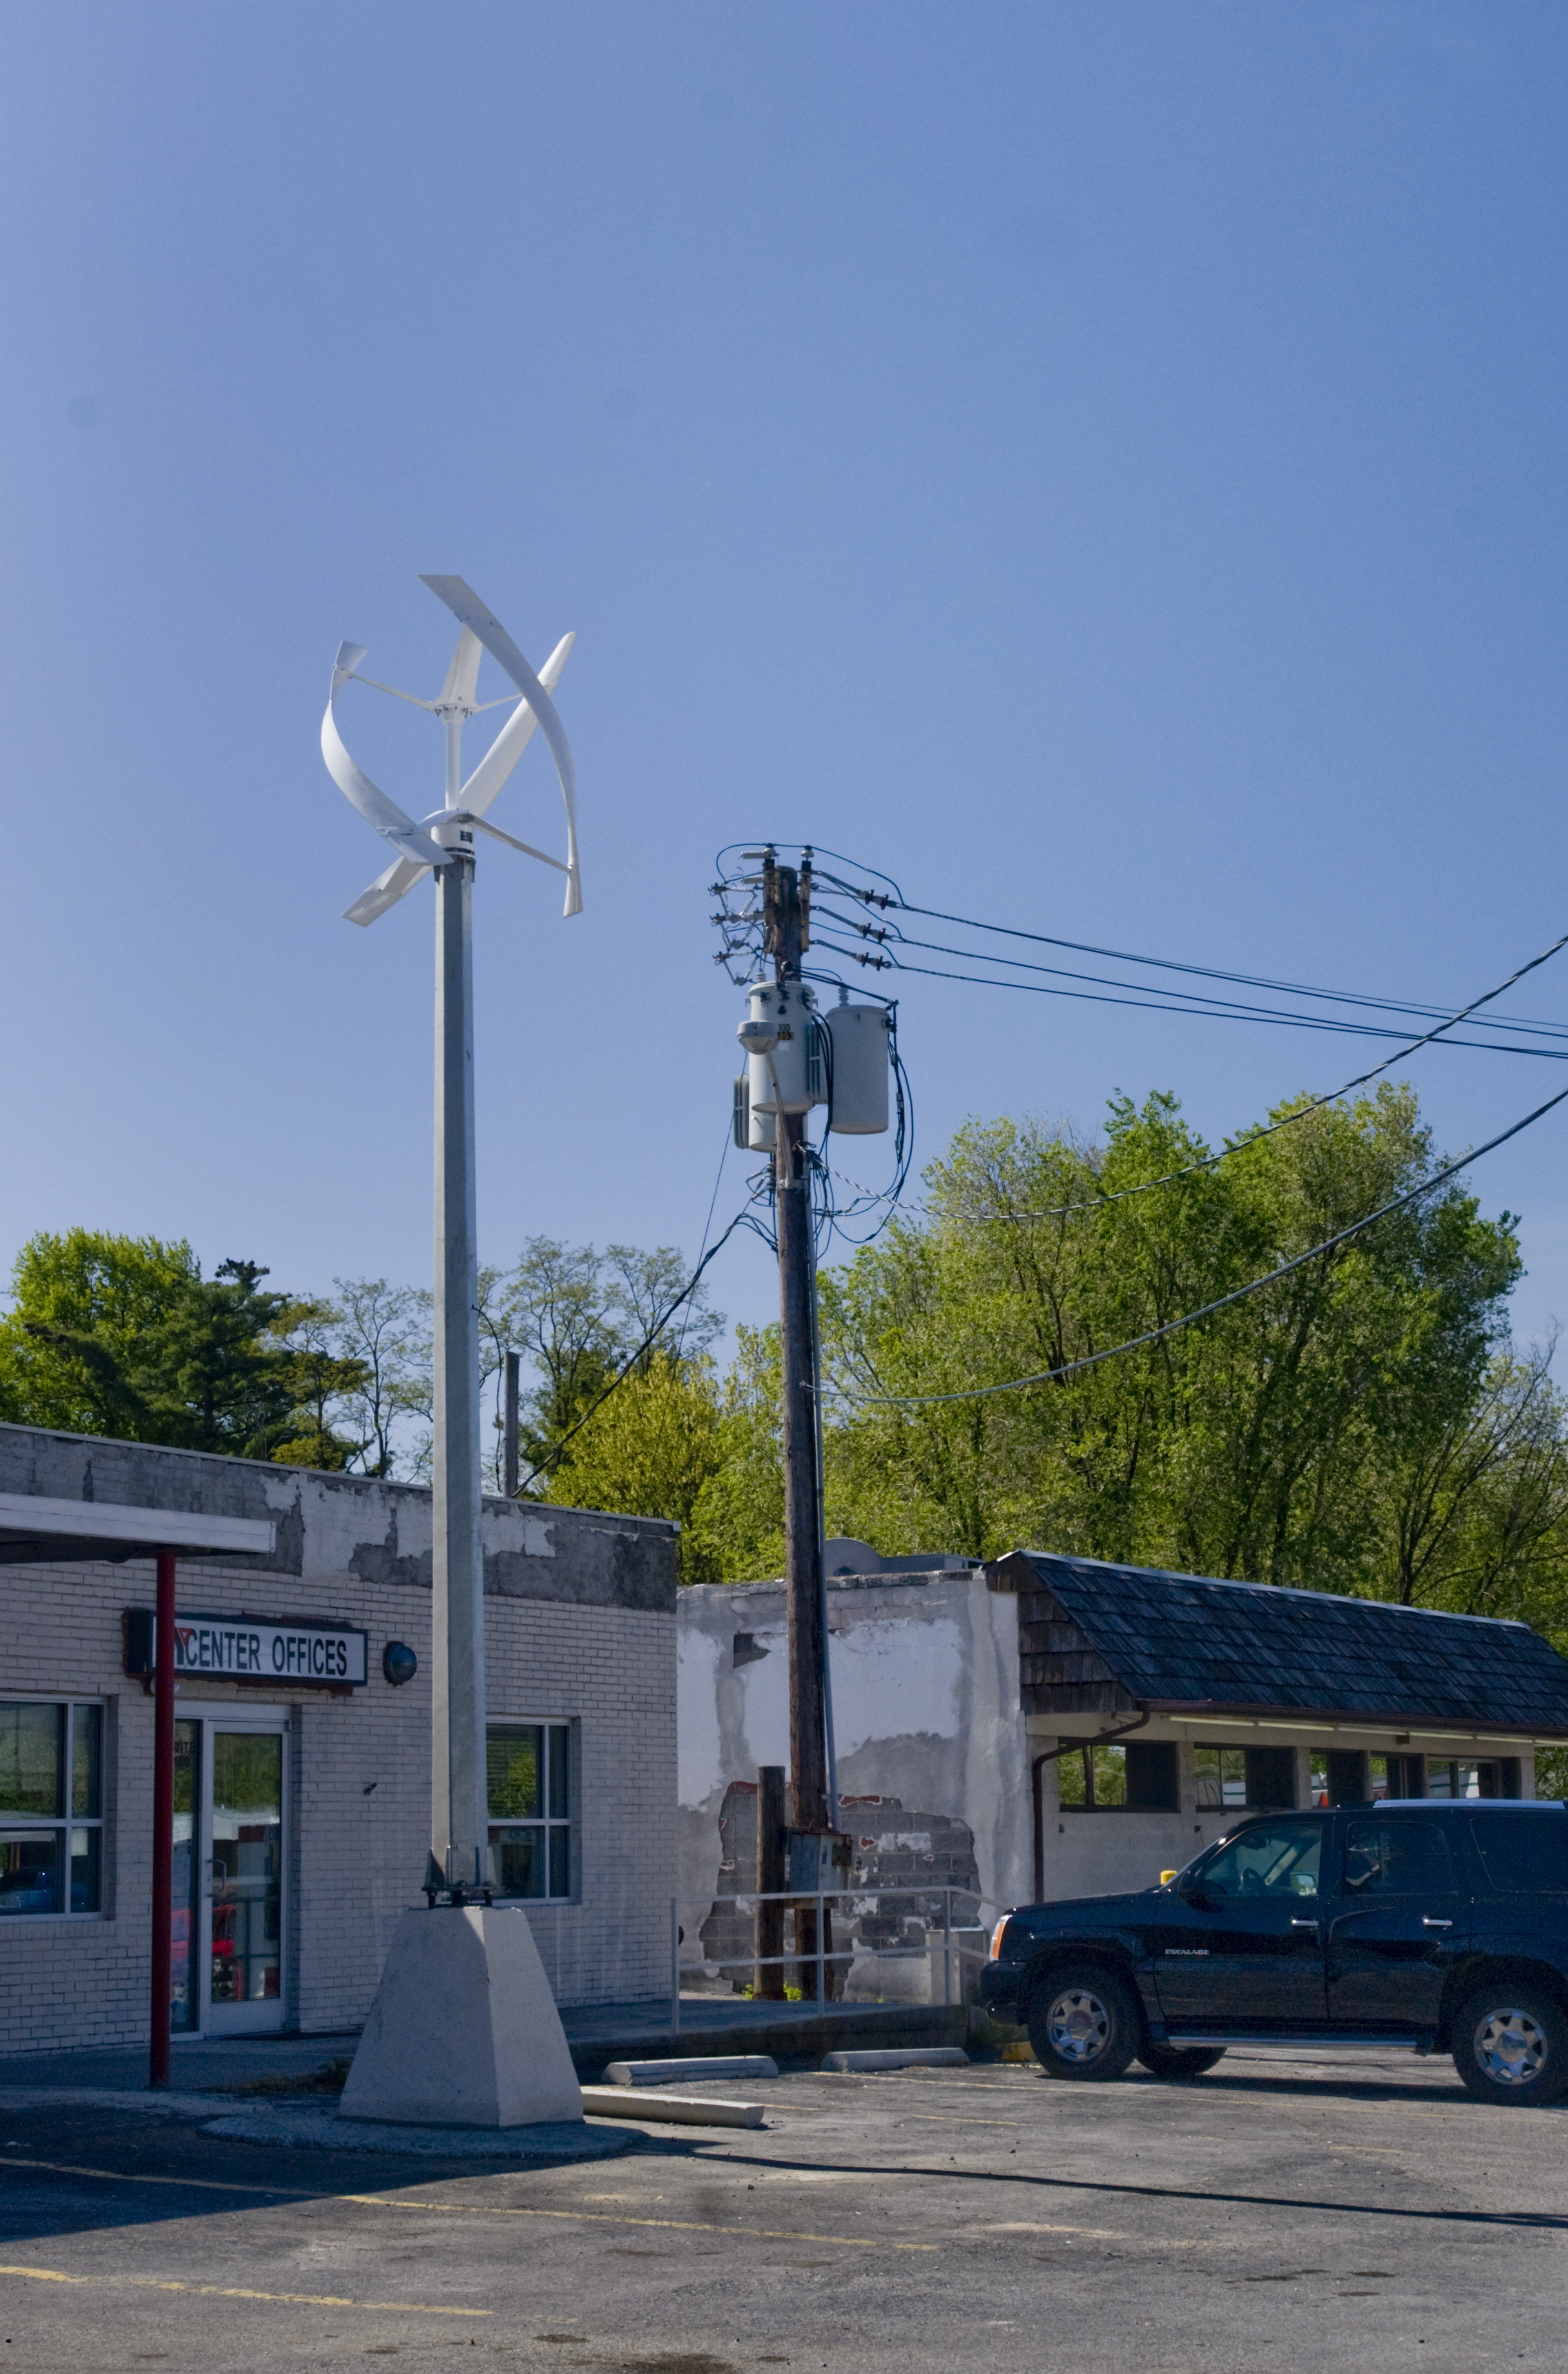 A verticle wind turbine in the forground with an electric pole in the near background